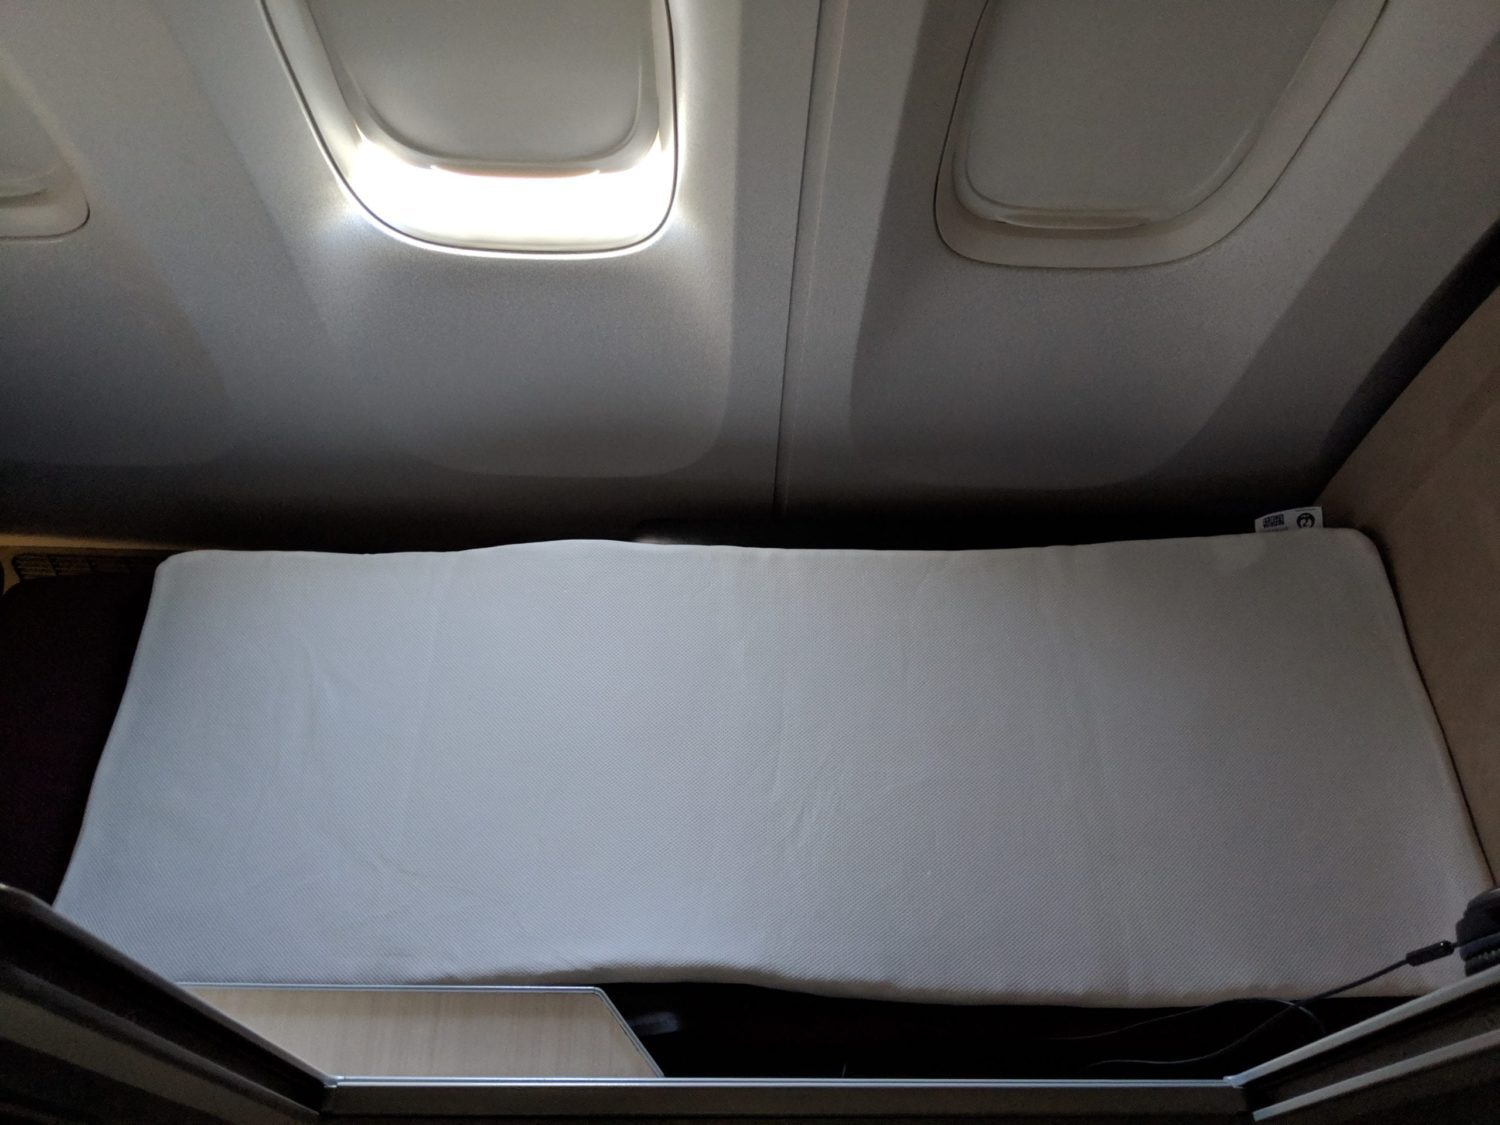 Japan Airlines Business Class seat bed